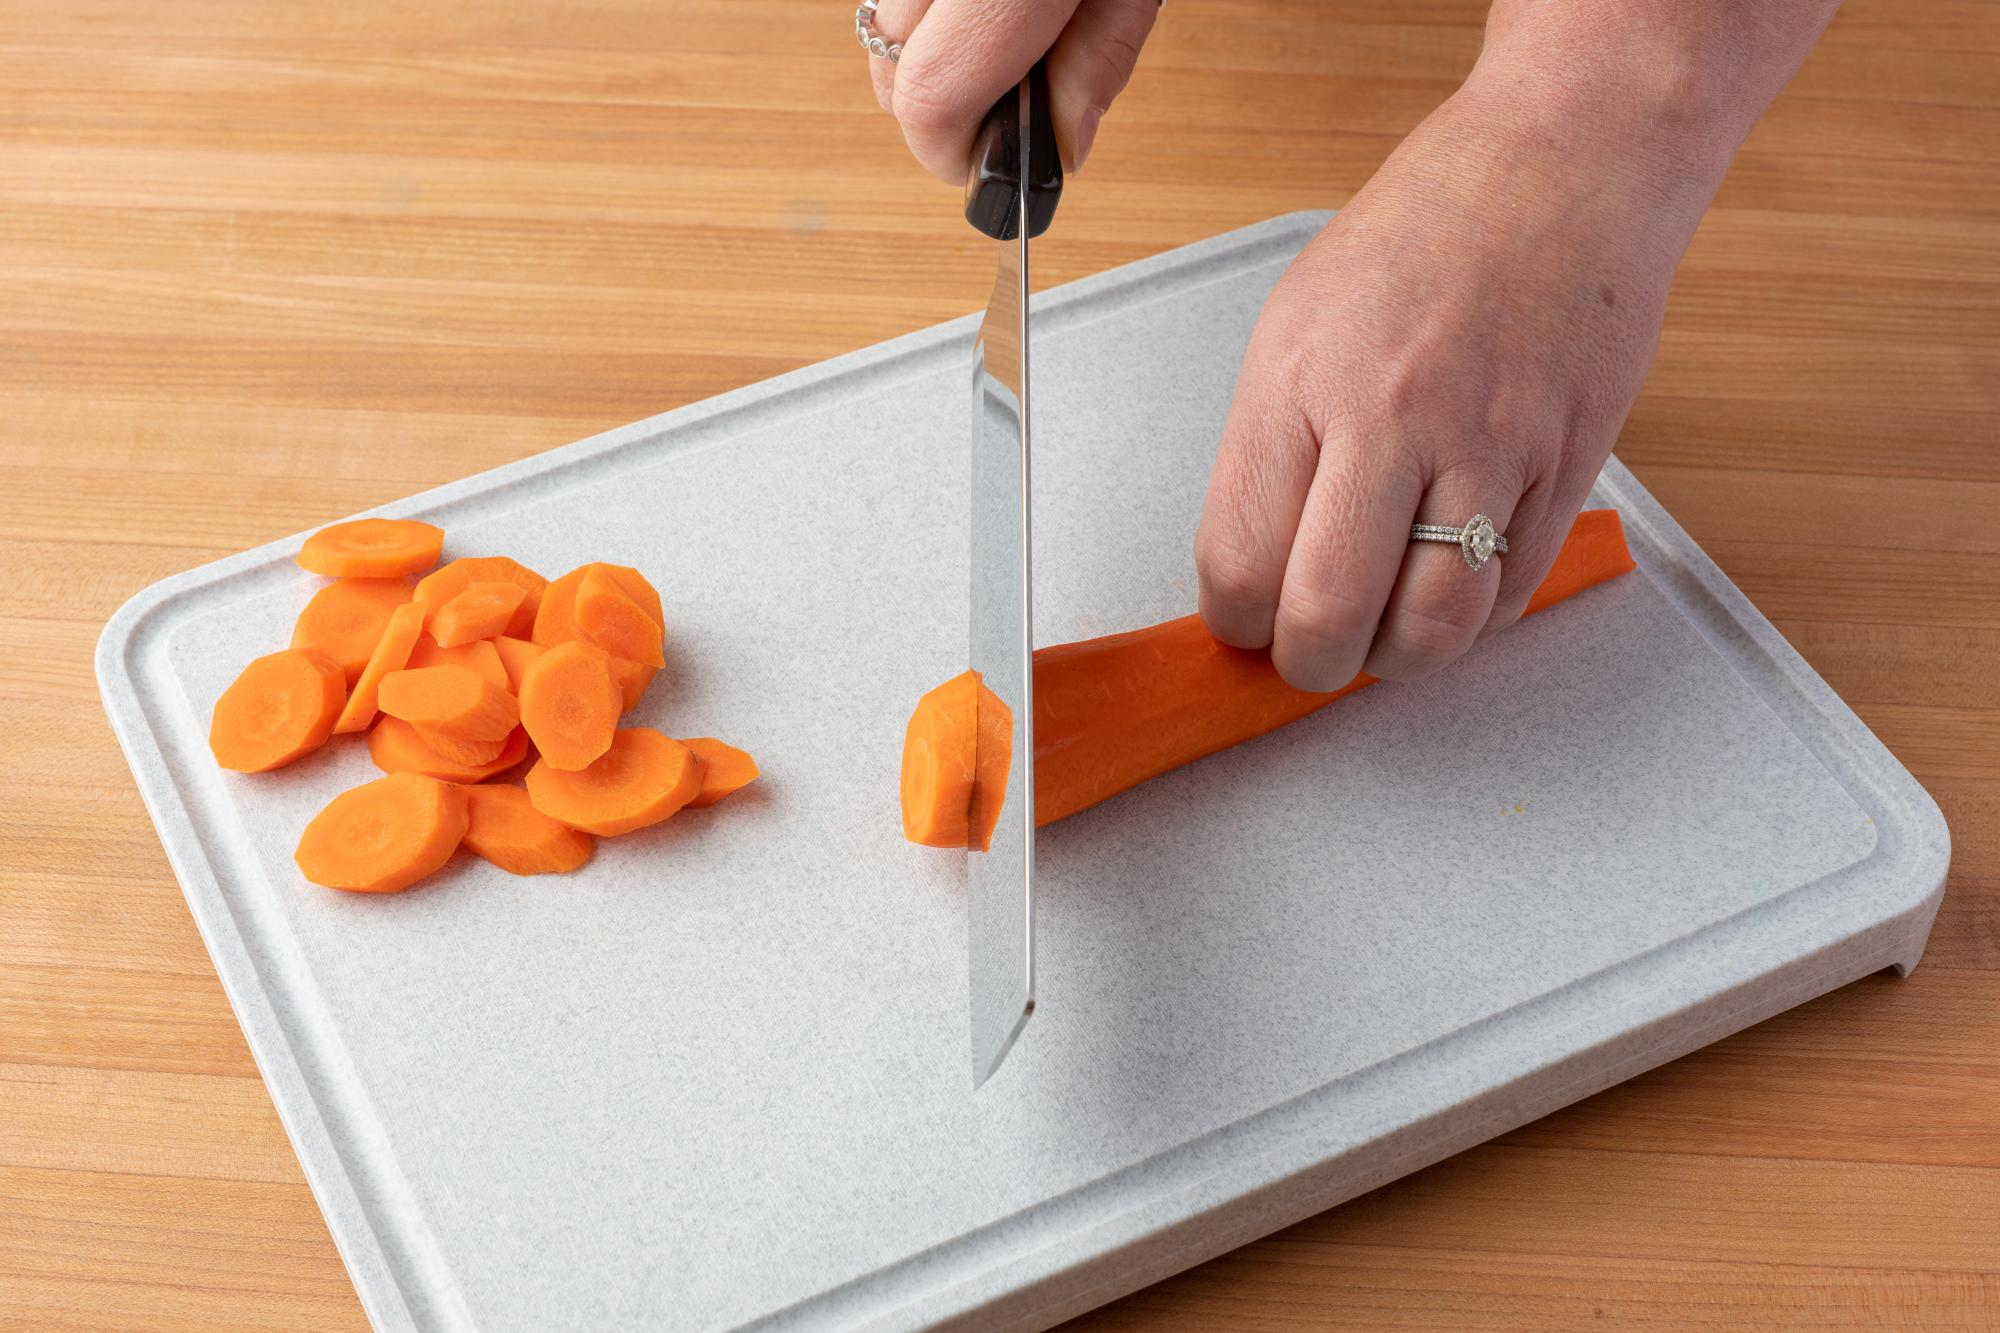 Cutting the carrot on the bias with a Vegetable Knife.